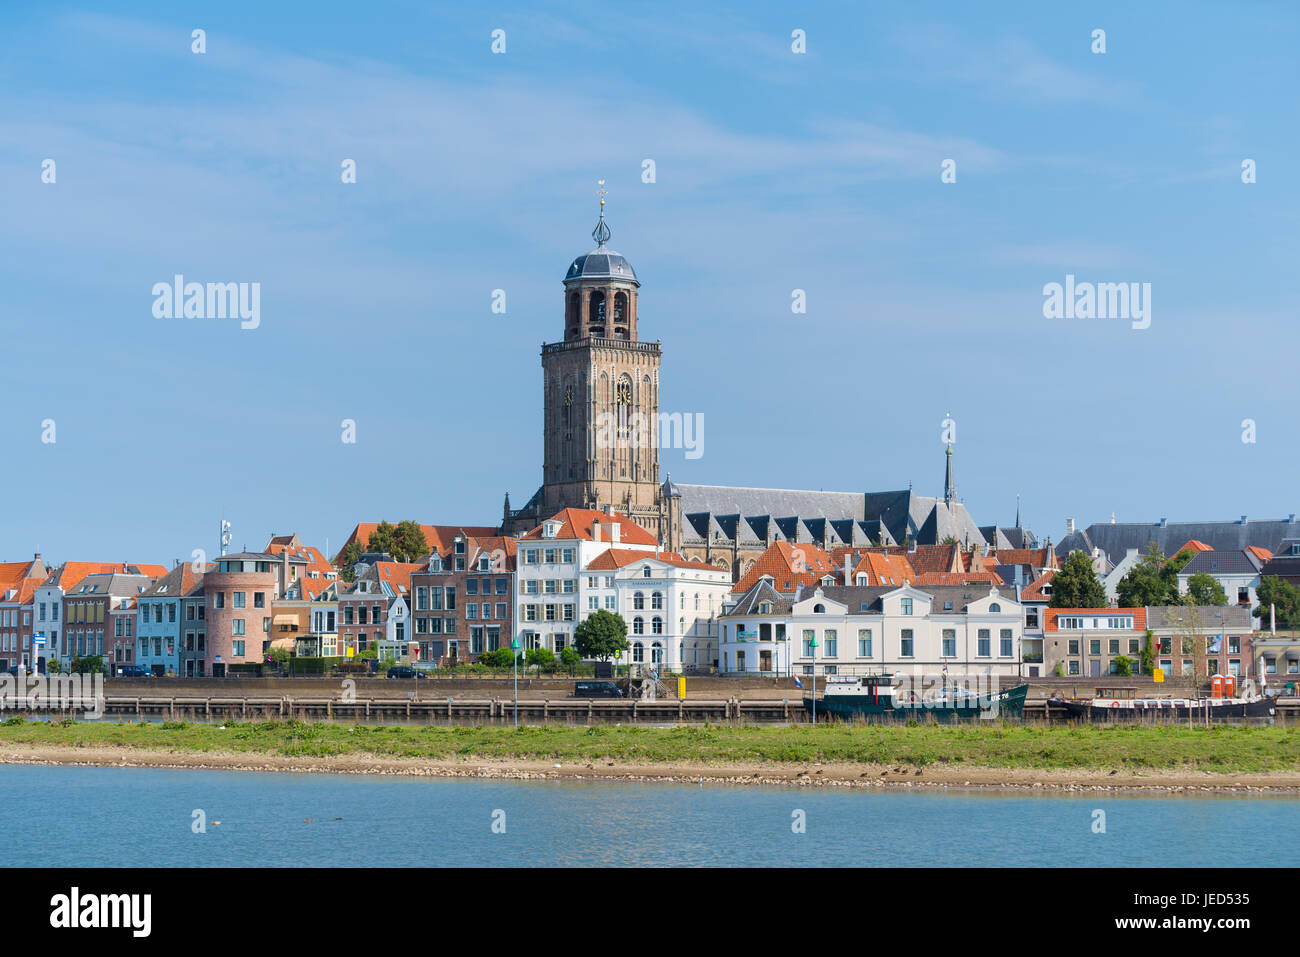 view on the medieval dutch city of Deventer with the Lebuinus church in the center Stock Photo